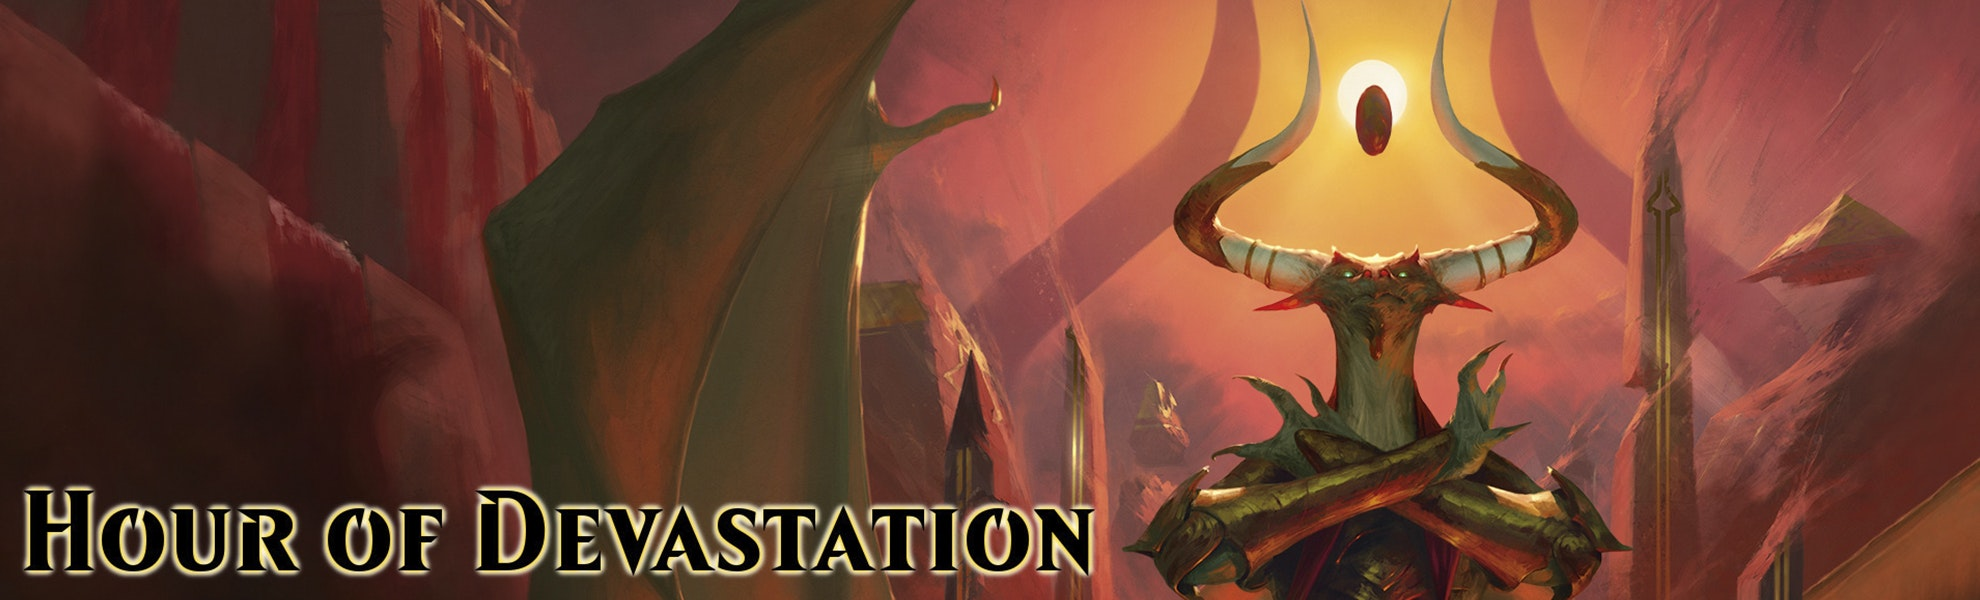 Hour of Devastation Full Set